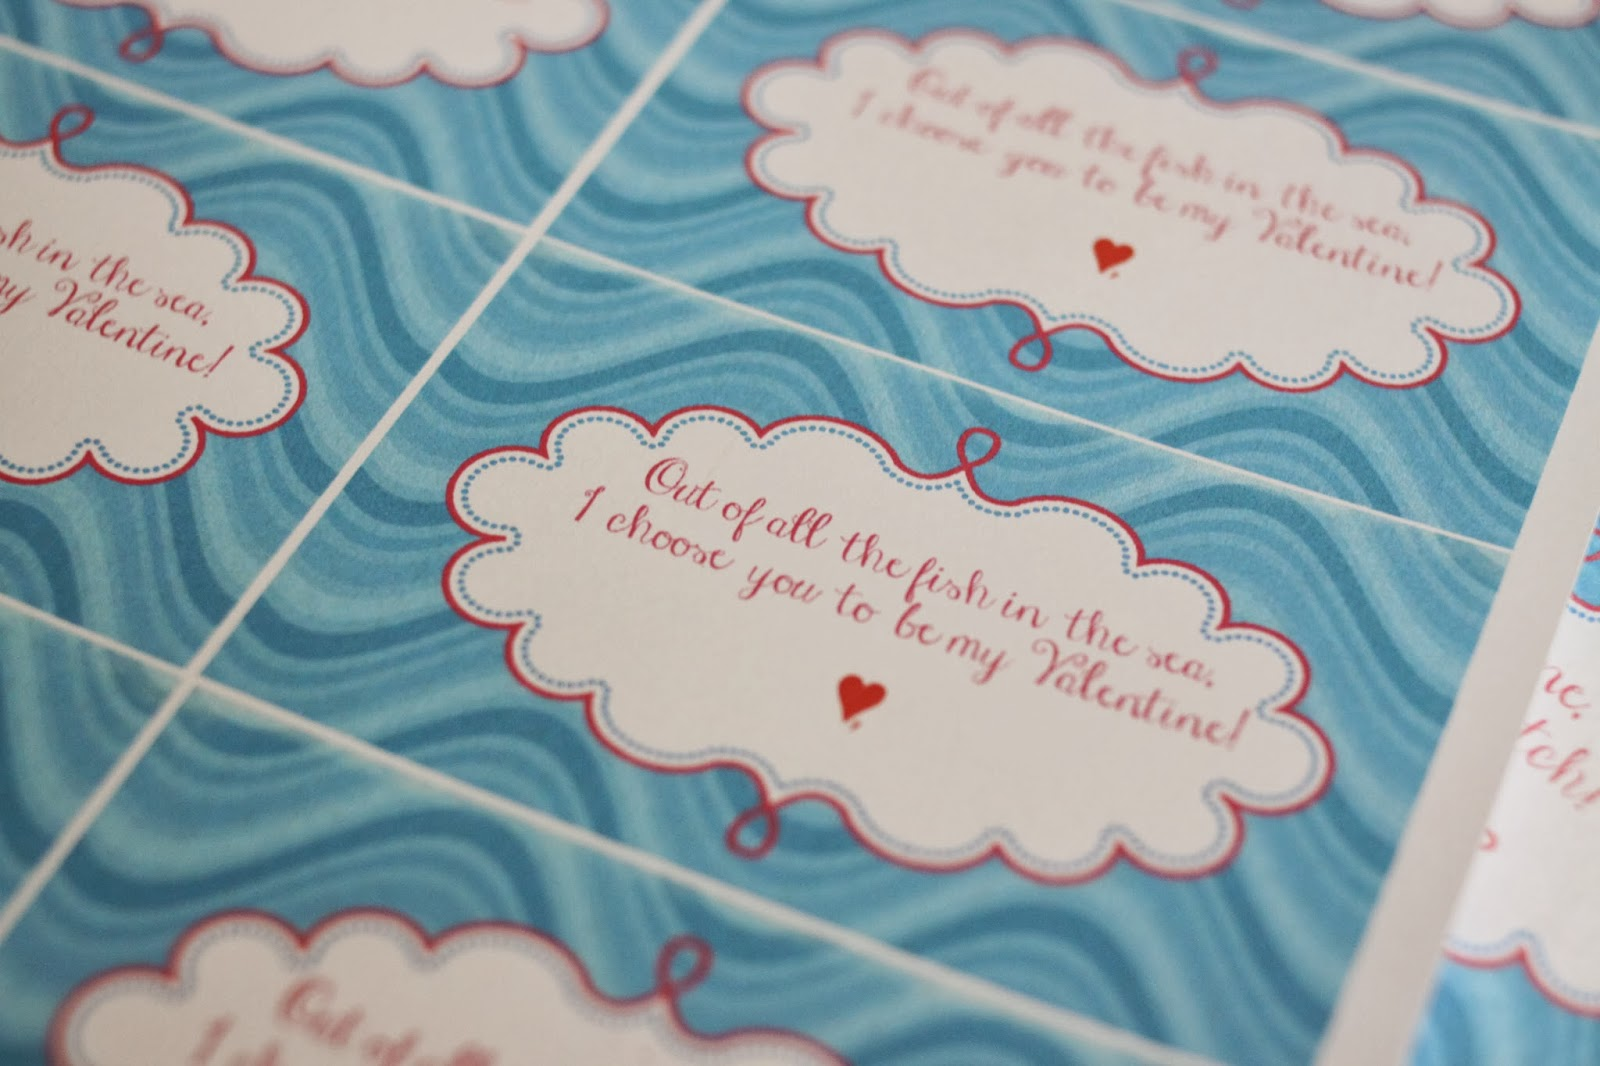 The larson lingo fish y valentines free printables for All the fish in the sea